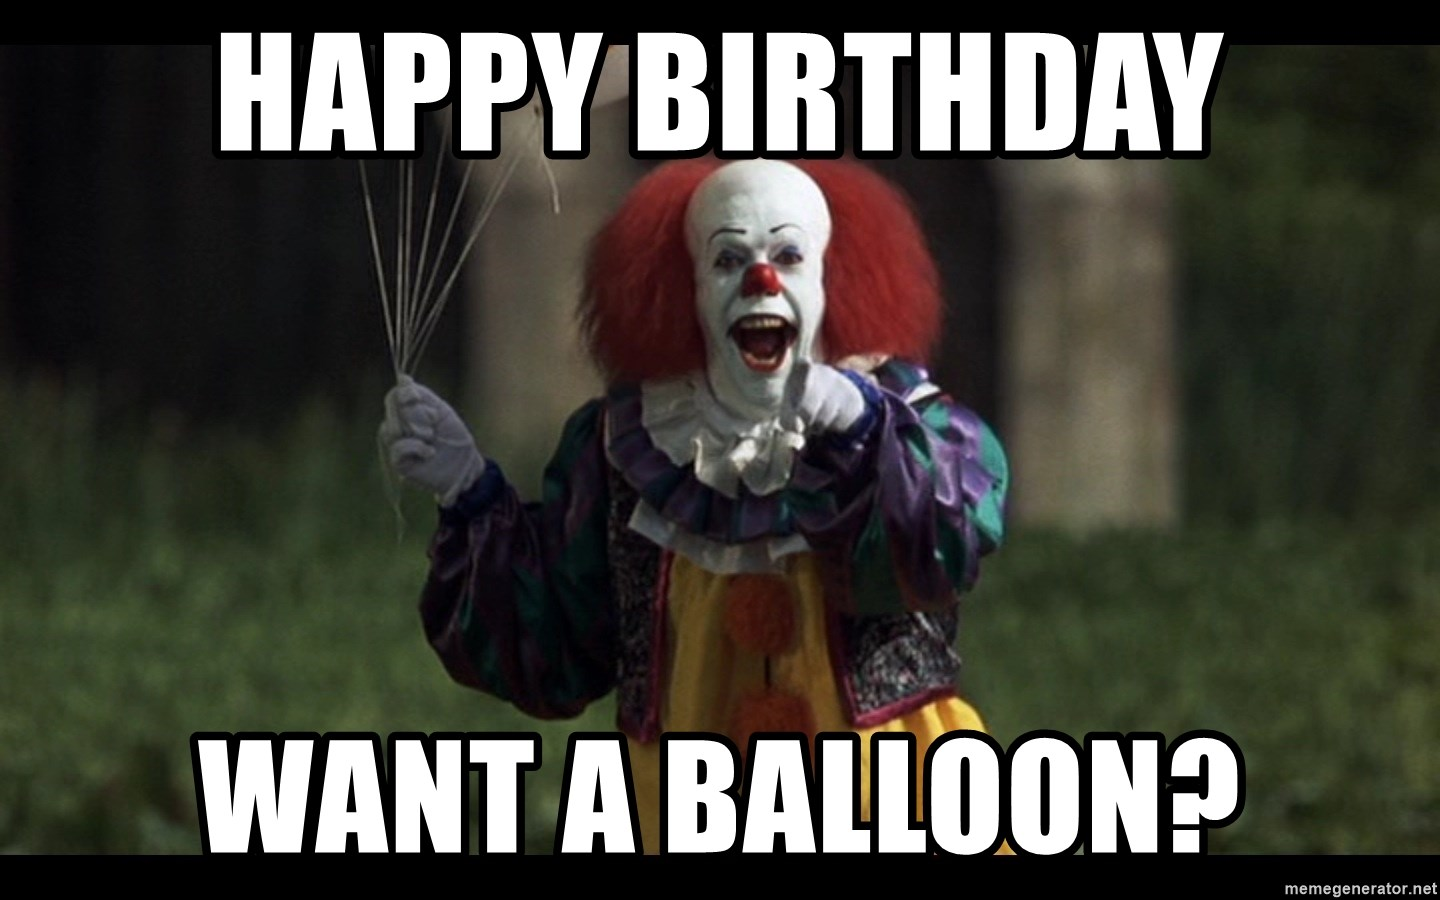 pennywise happy birthday HAPPY BIRTHDAY WANT A BALLOON?   Pennywise the Clown ballon   Meme  pennywise happy birthday